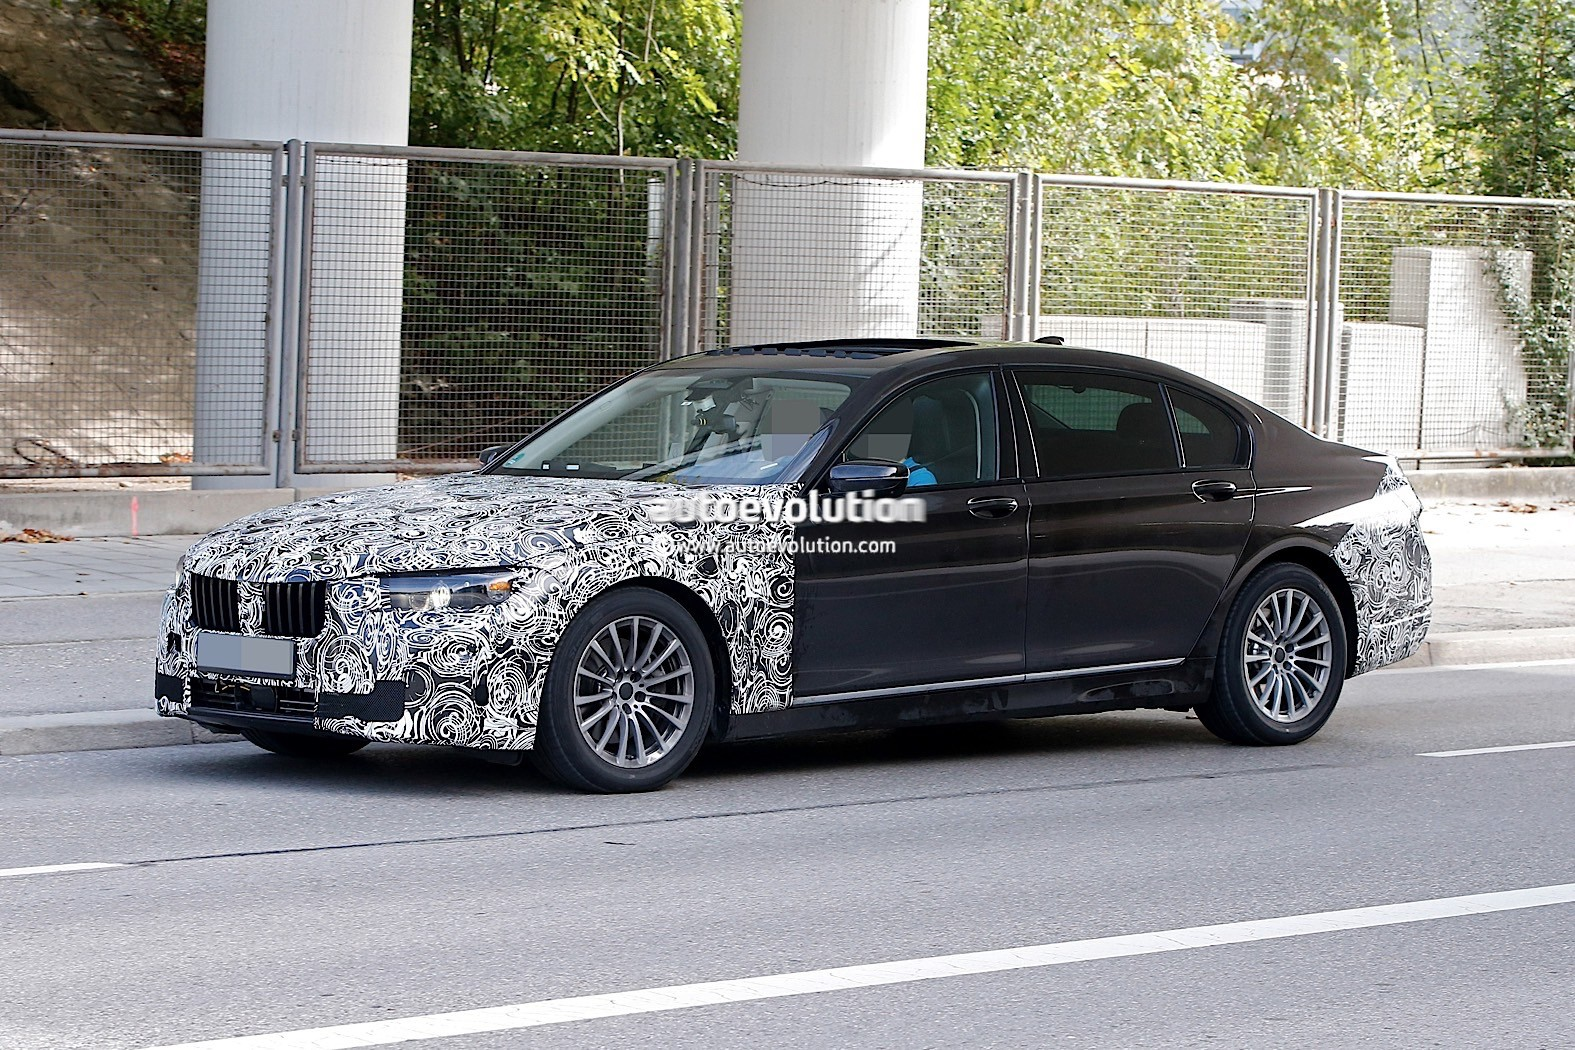 New Bmw 7 Series Rendered With X7 Iperformance Concept Details Looks